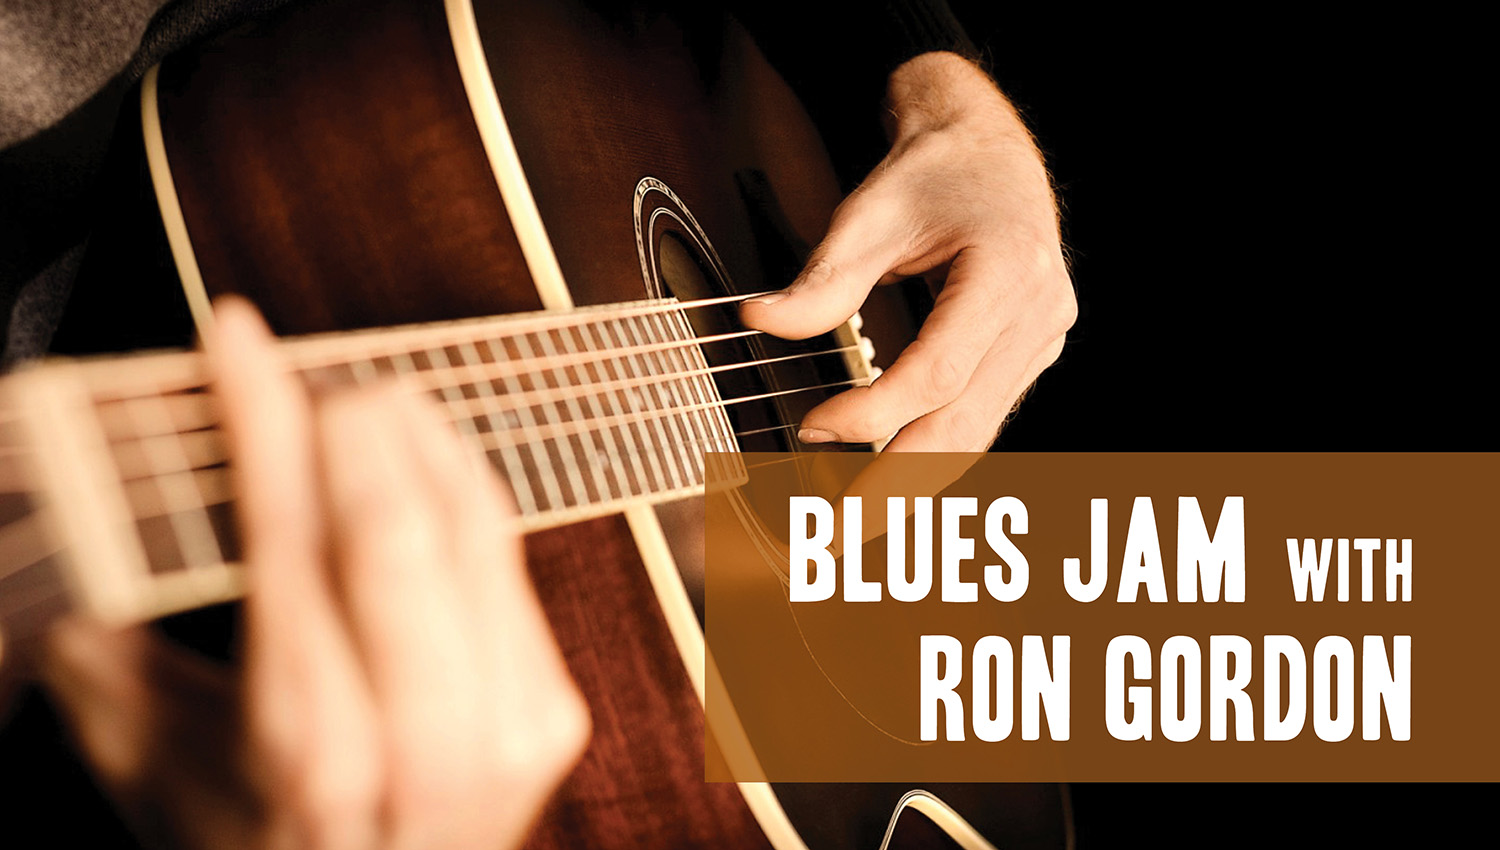 8th Step_Web Banner_Images_blues jam.jpg